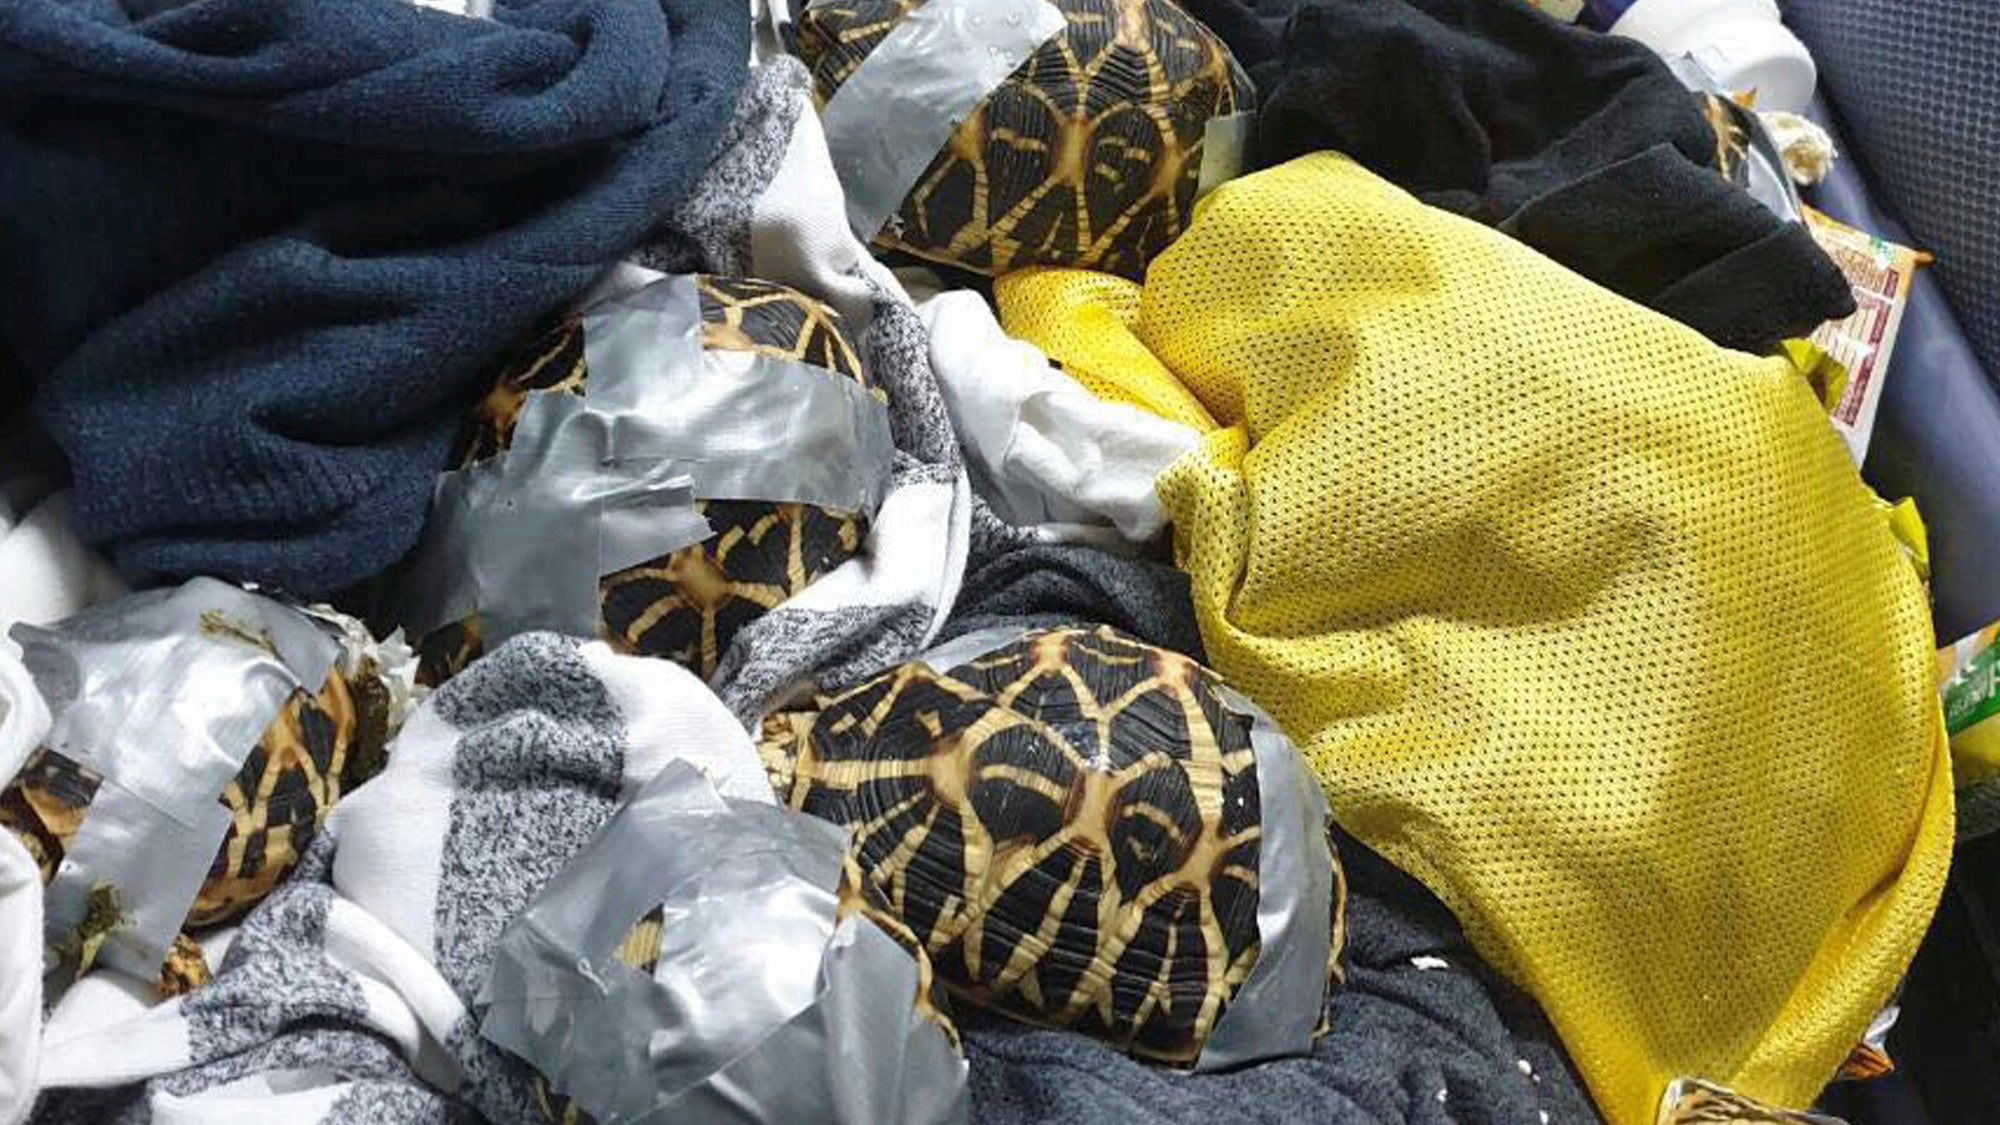 Hundreds Of Exotic Turtles And Tortoises Wrapped In Duct Tape Found In Airport Luggage